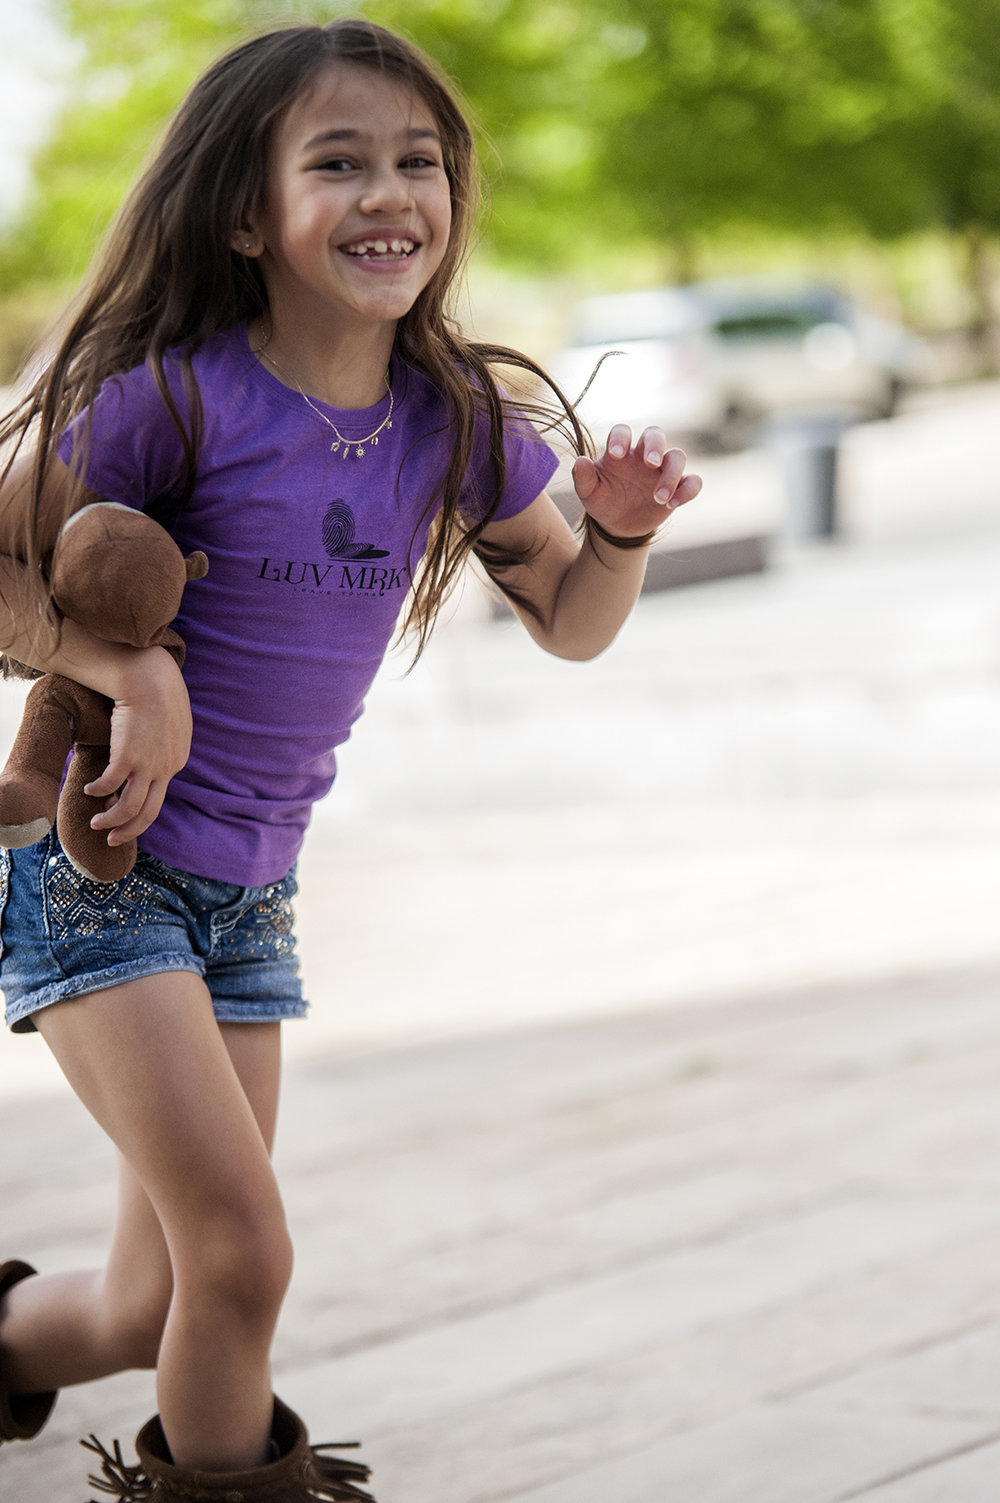 Girl Shirt. Running. Mylee.jpg